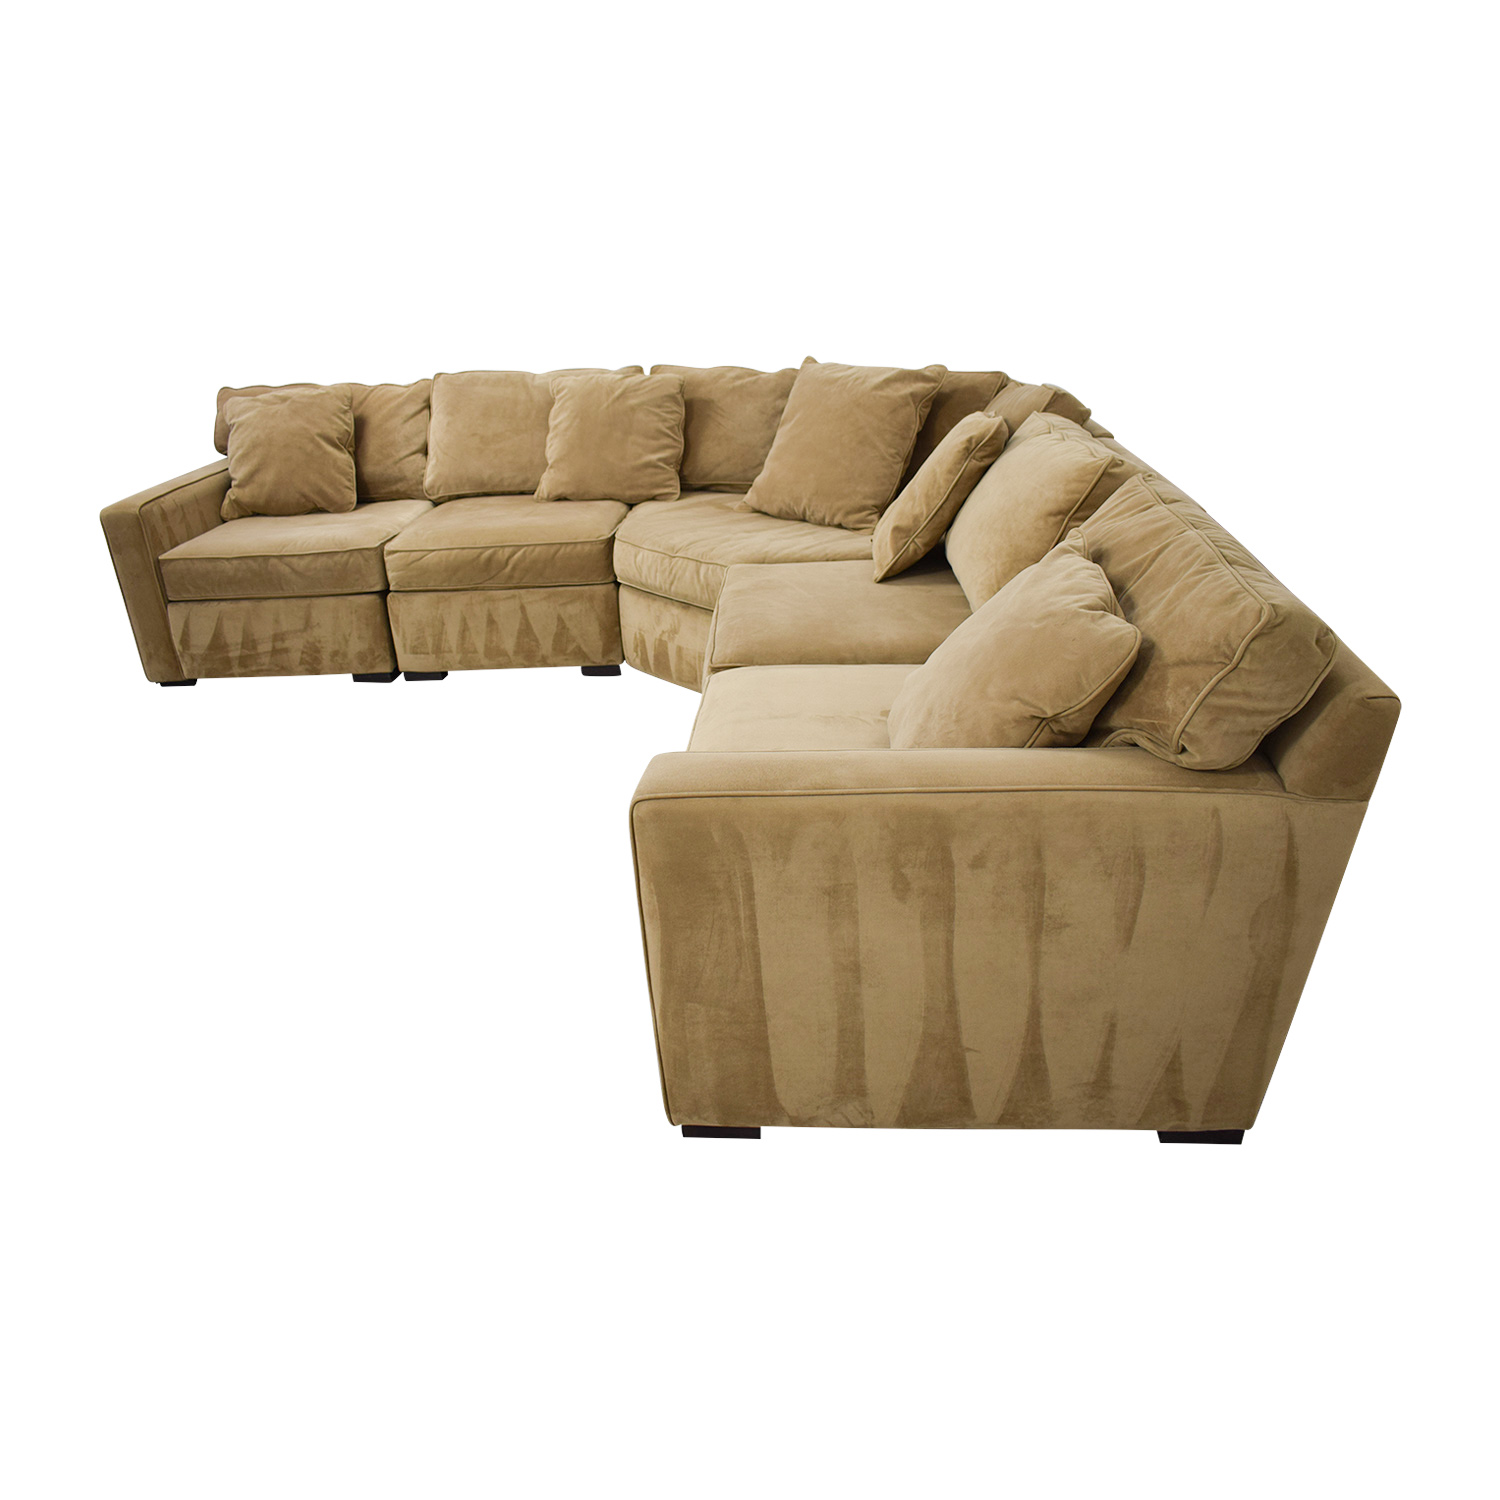 shop Macy's Tan Corner L-Shaped Sectional Macy's